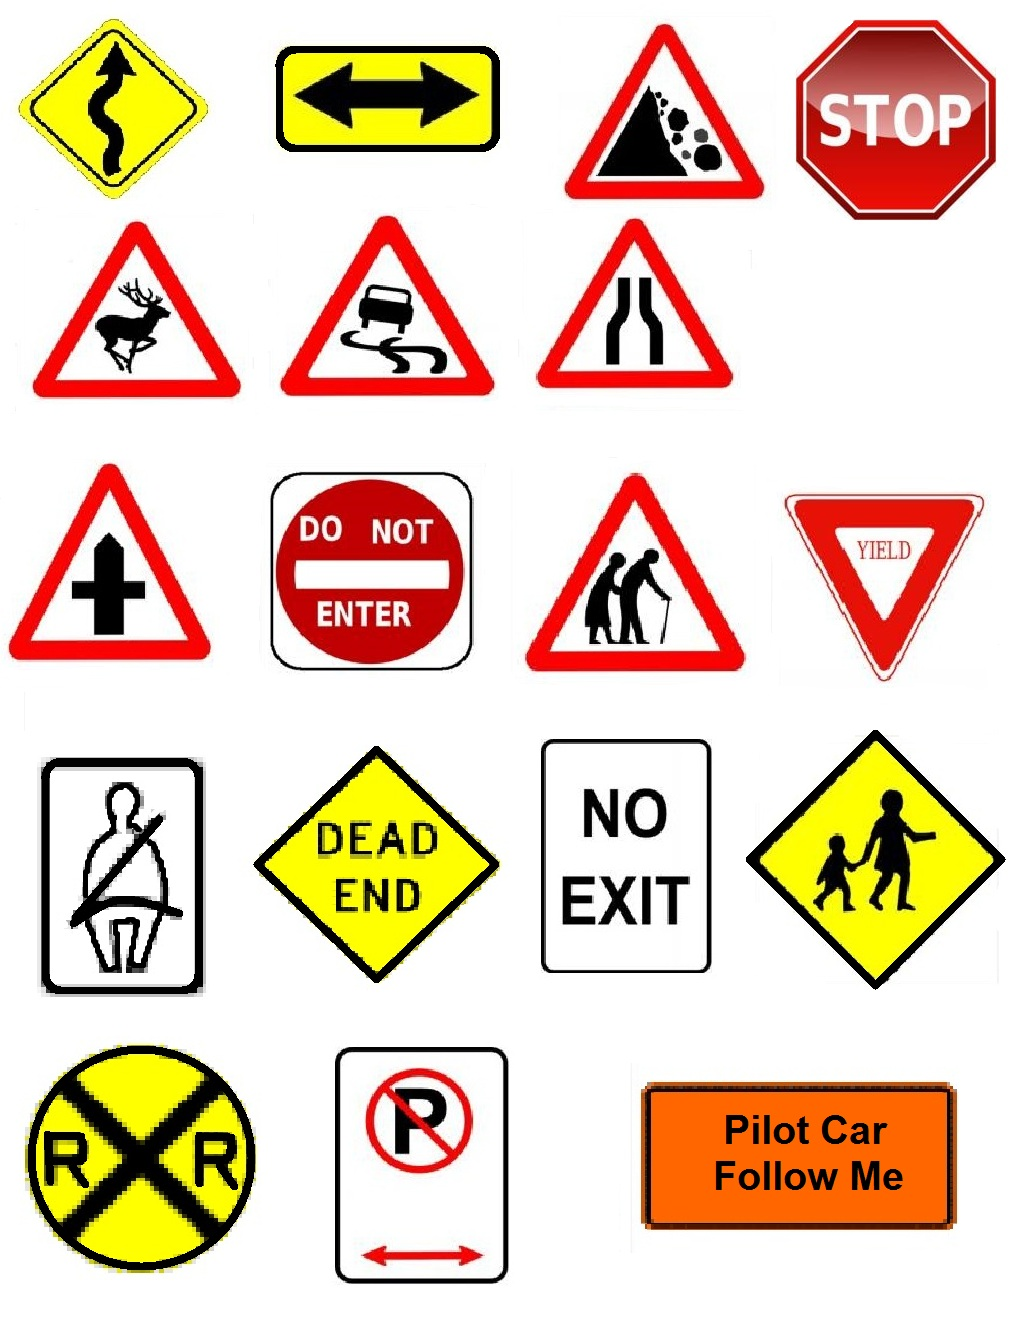 stop sign clipart at getdrawings com free for personal use stop rh getdrawings com stop sign clip art free road sign clip art free download